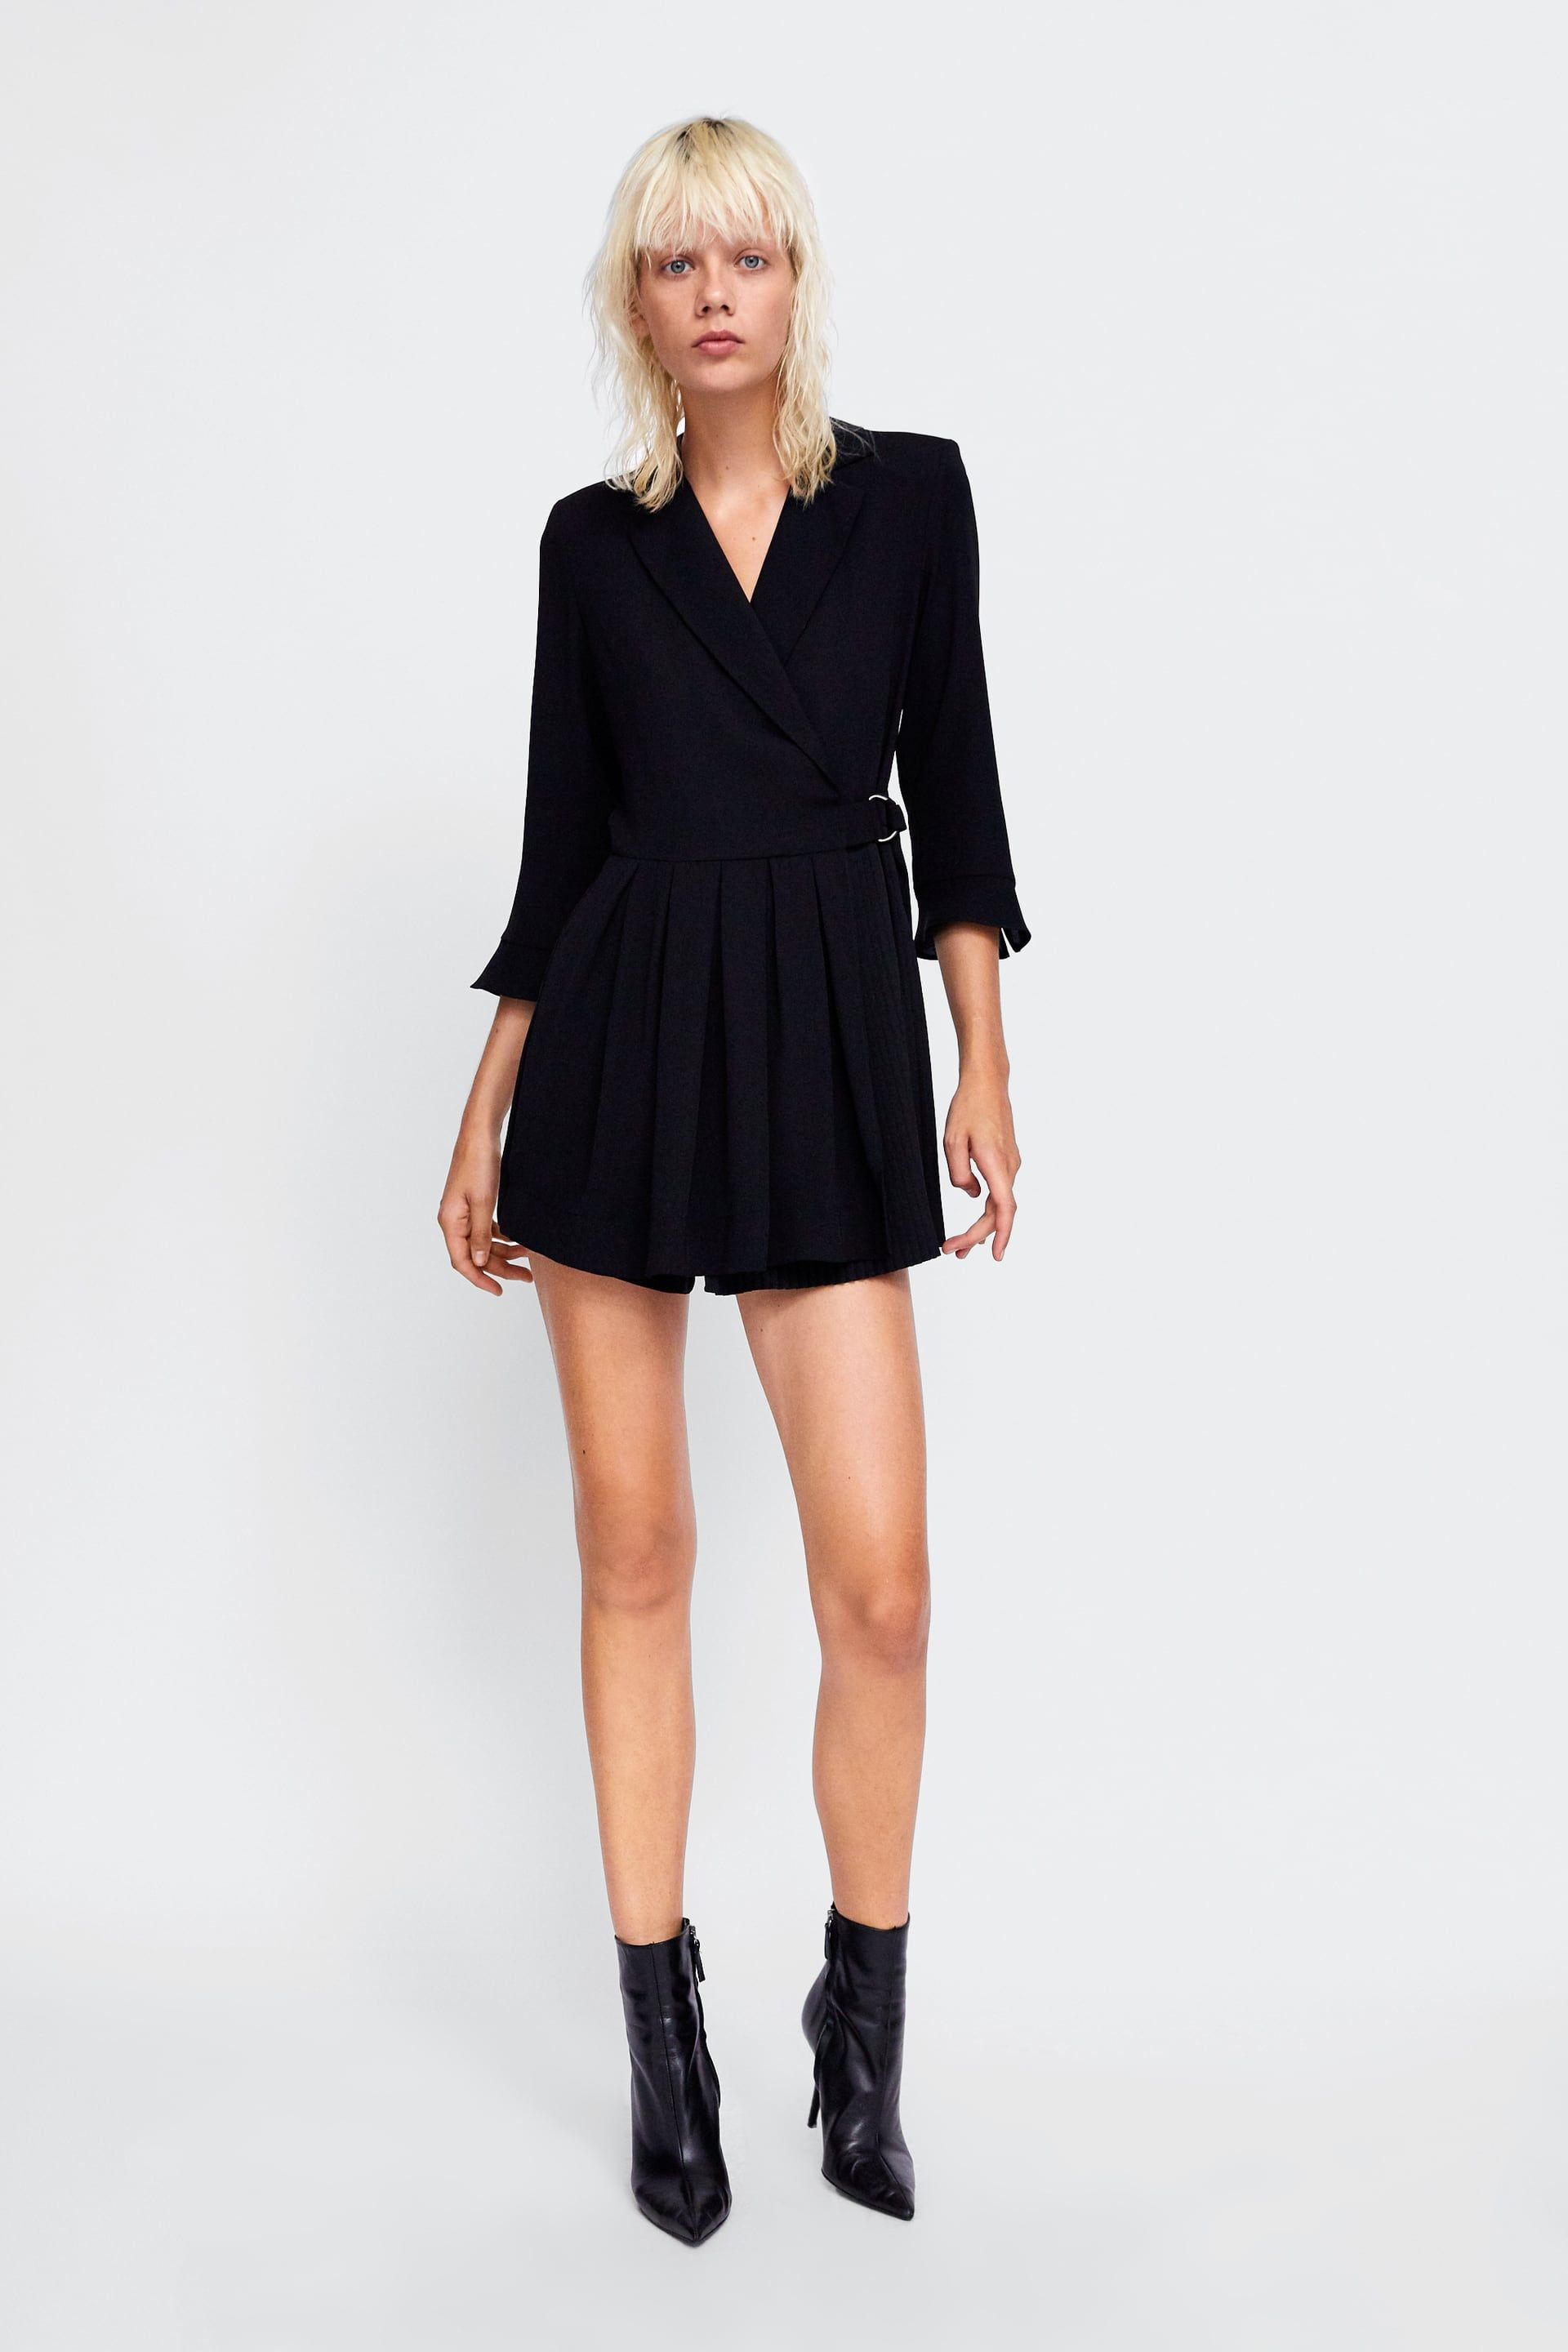 b42c9b36de3 ZARA - WOMAN - PLEATED BLAZER PLAYSUIT